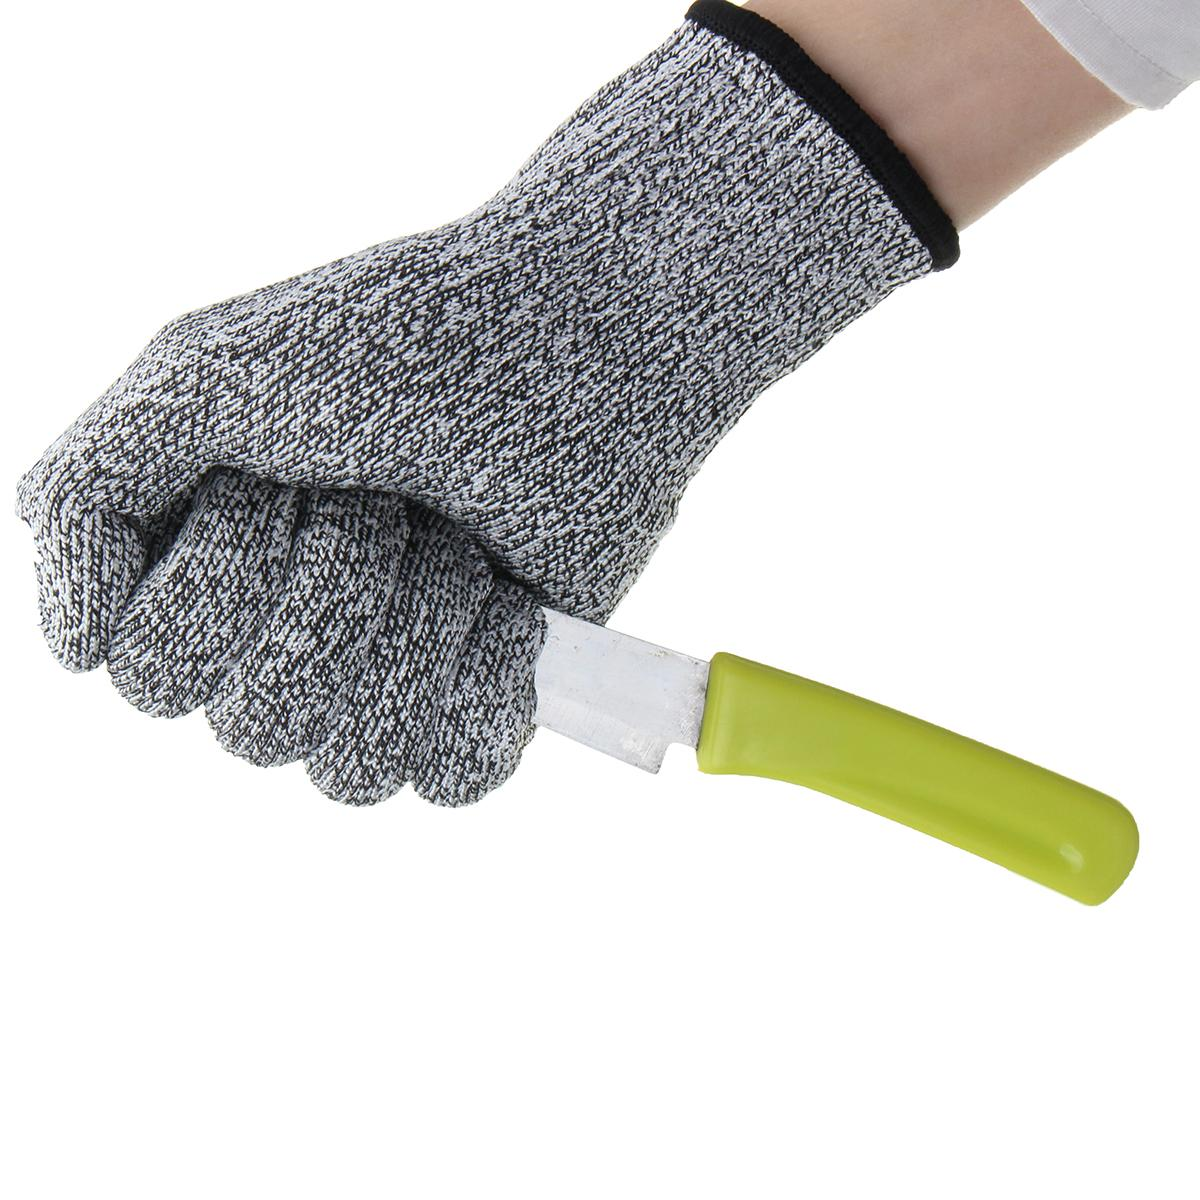 Safurance Anti-Cutting Cut Resistant Gloves Food Grade Kitchen Butcher Protection -Level 5 Workplace Safety 1kg refined d xylose food grade 99 5